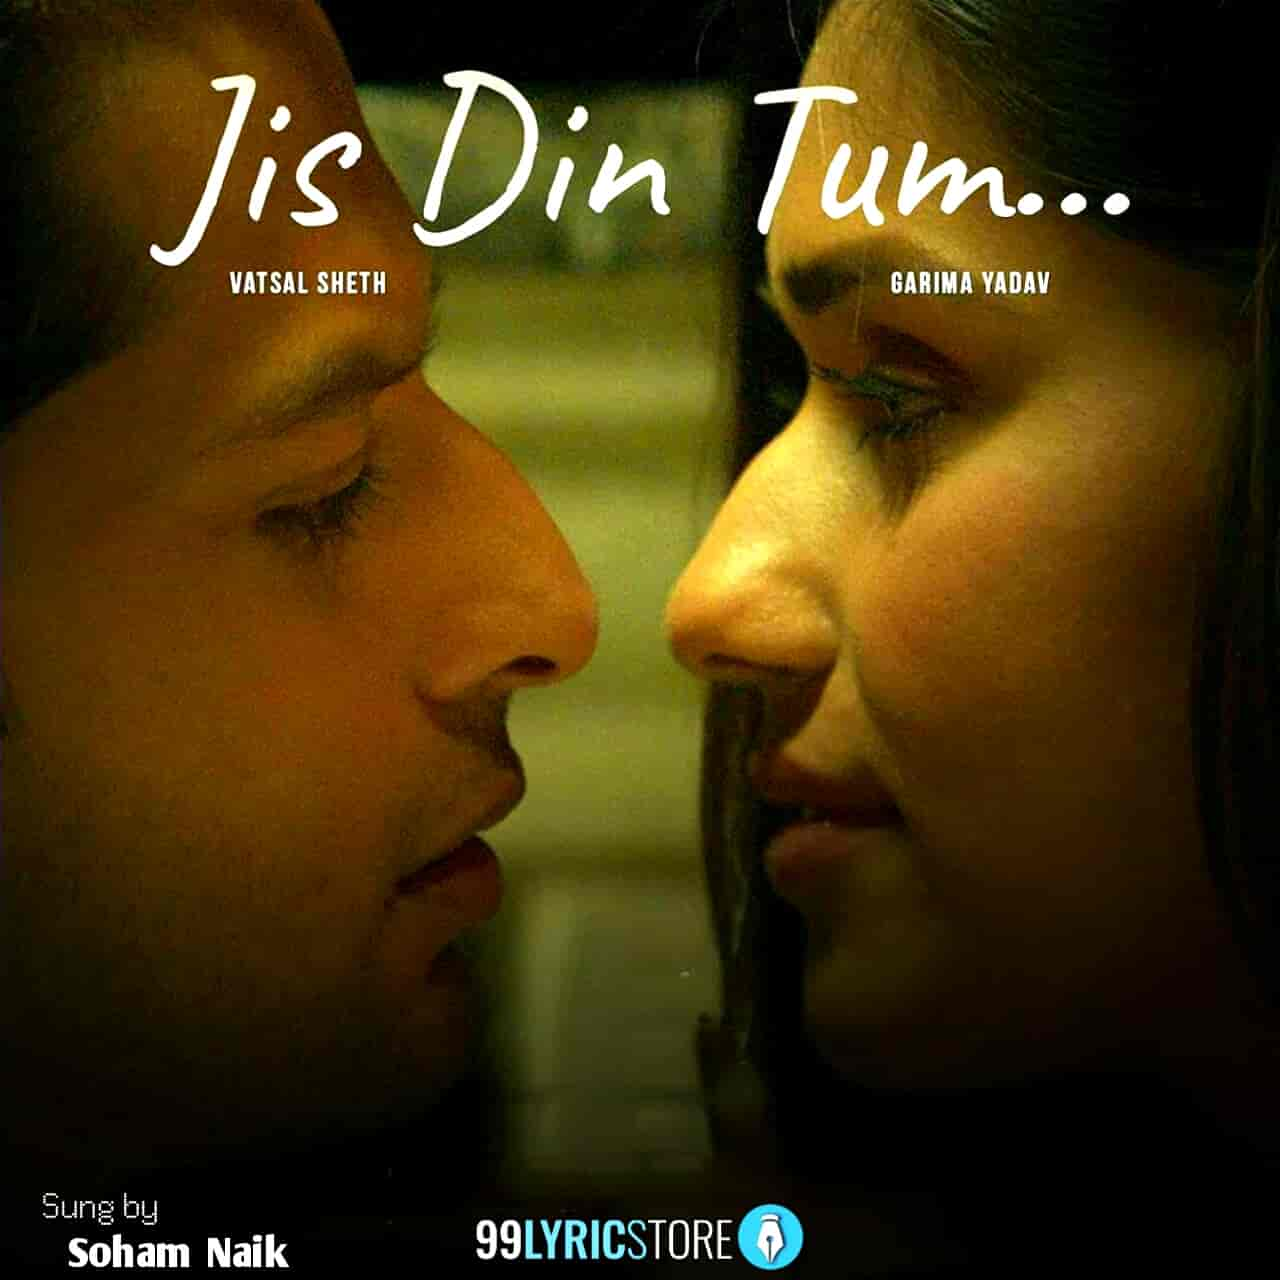 Jis Din Tum Song Lyrics Images By Soham Naik